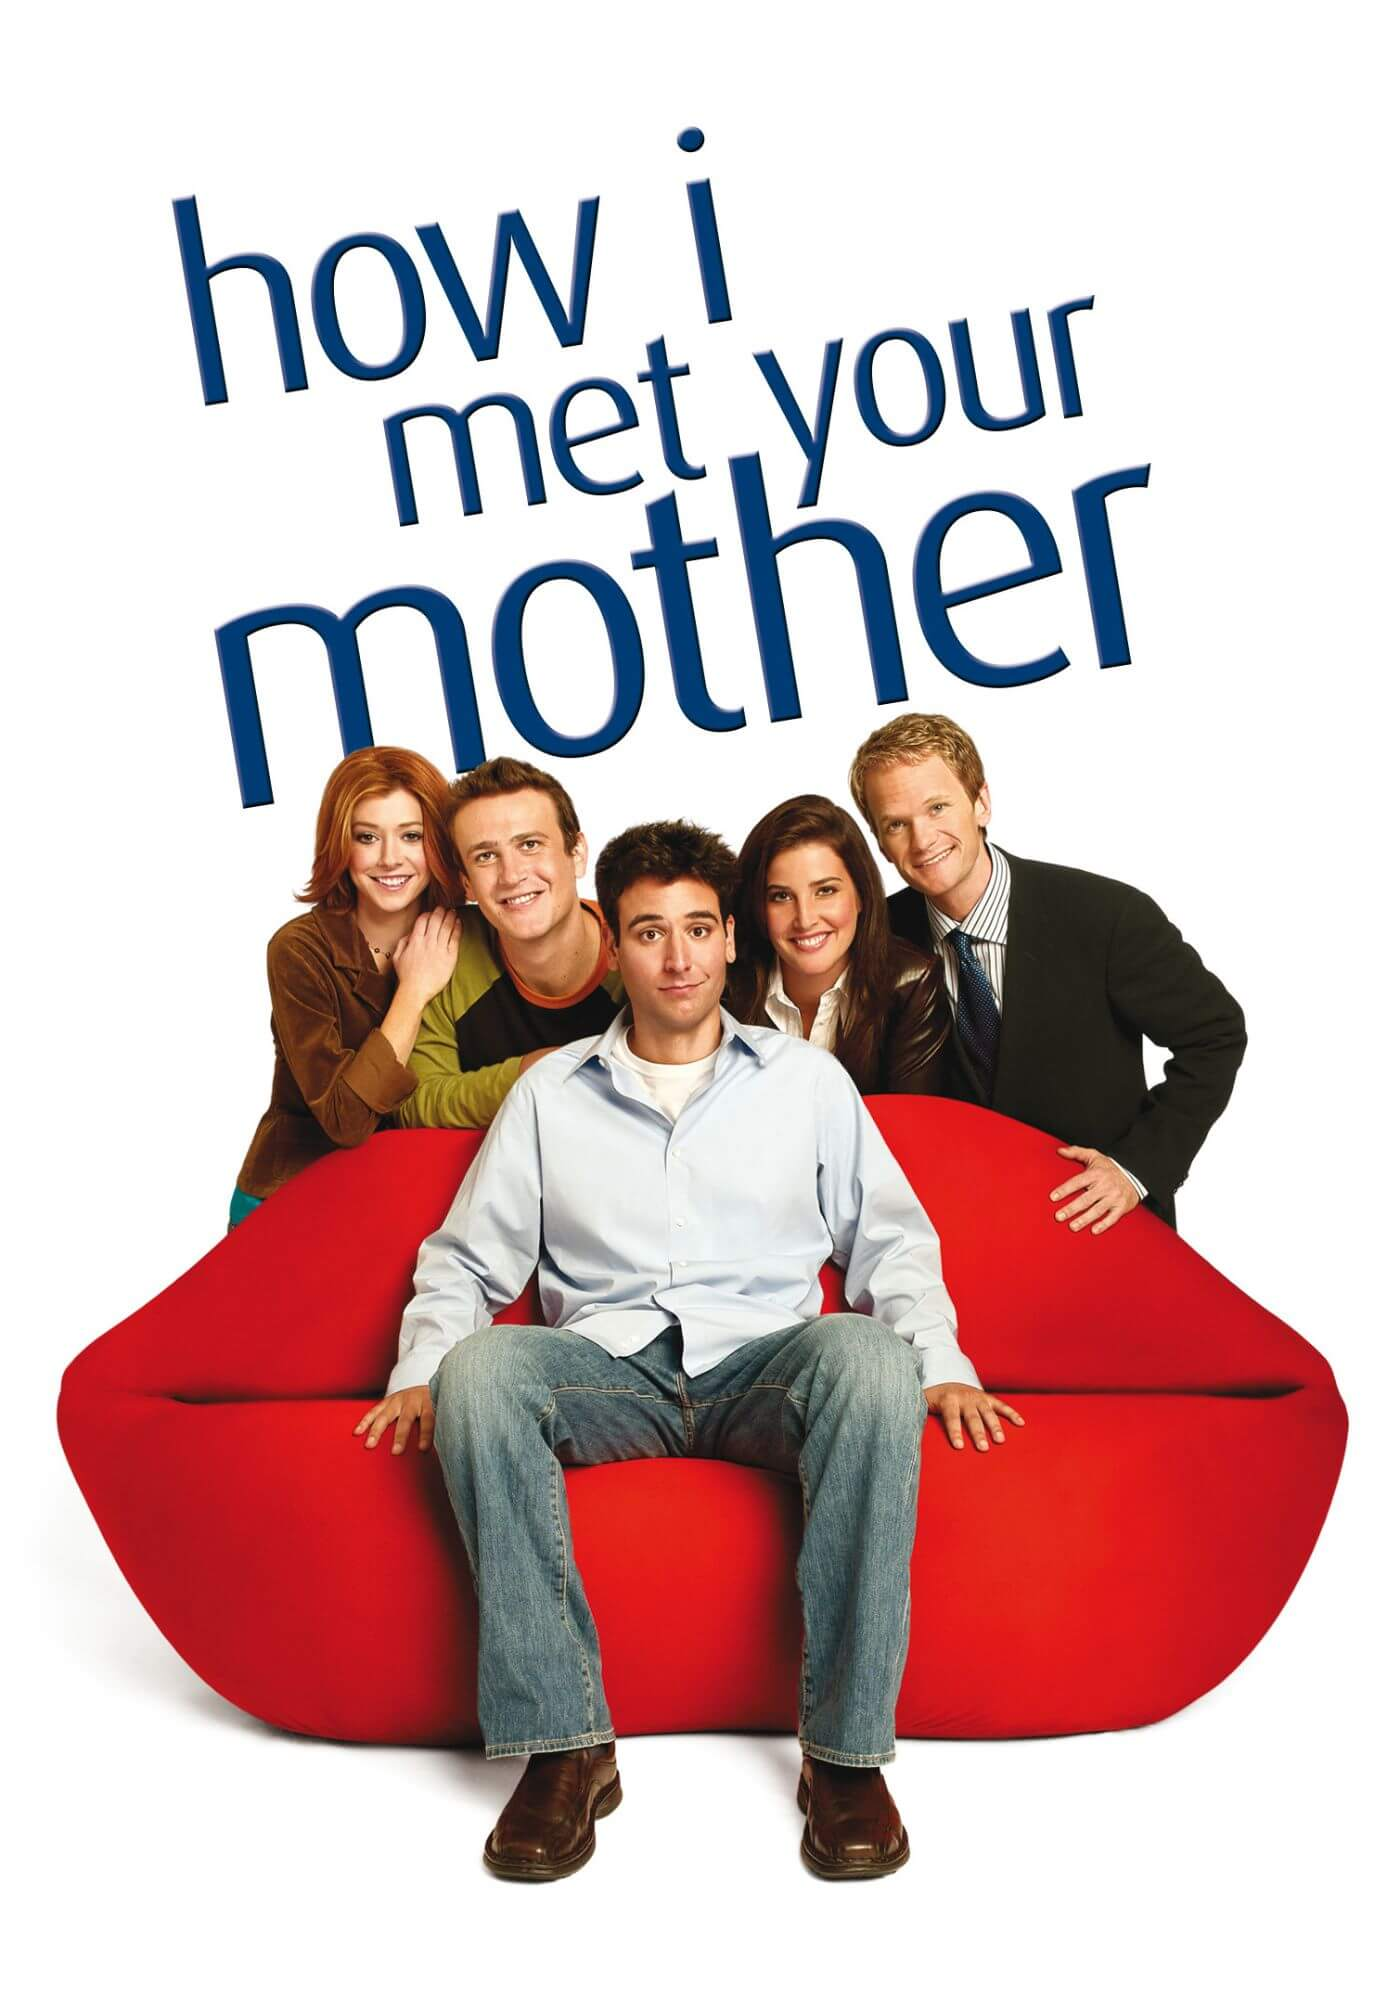 How I Met Your Mother - Classic TV Show Poster 5 - Art Prints